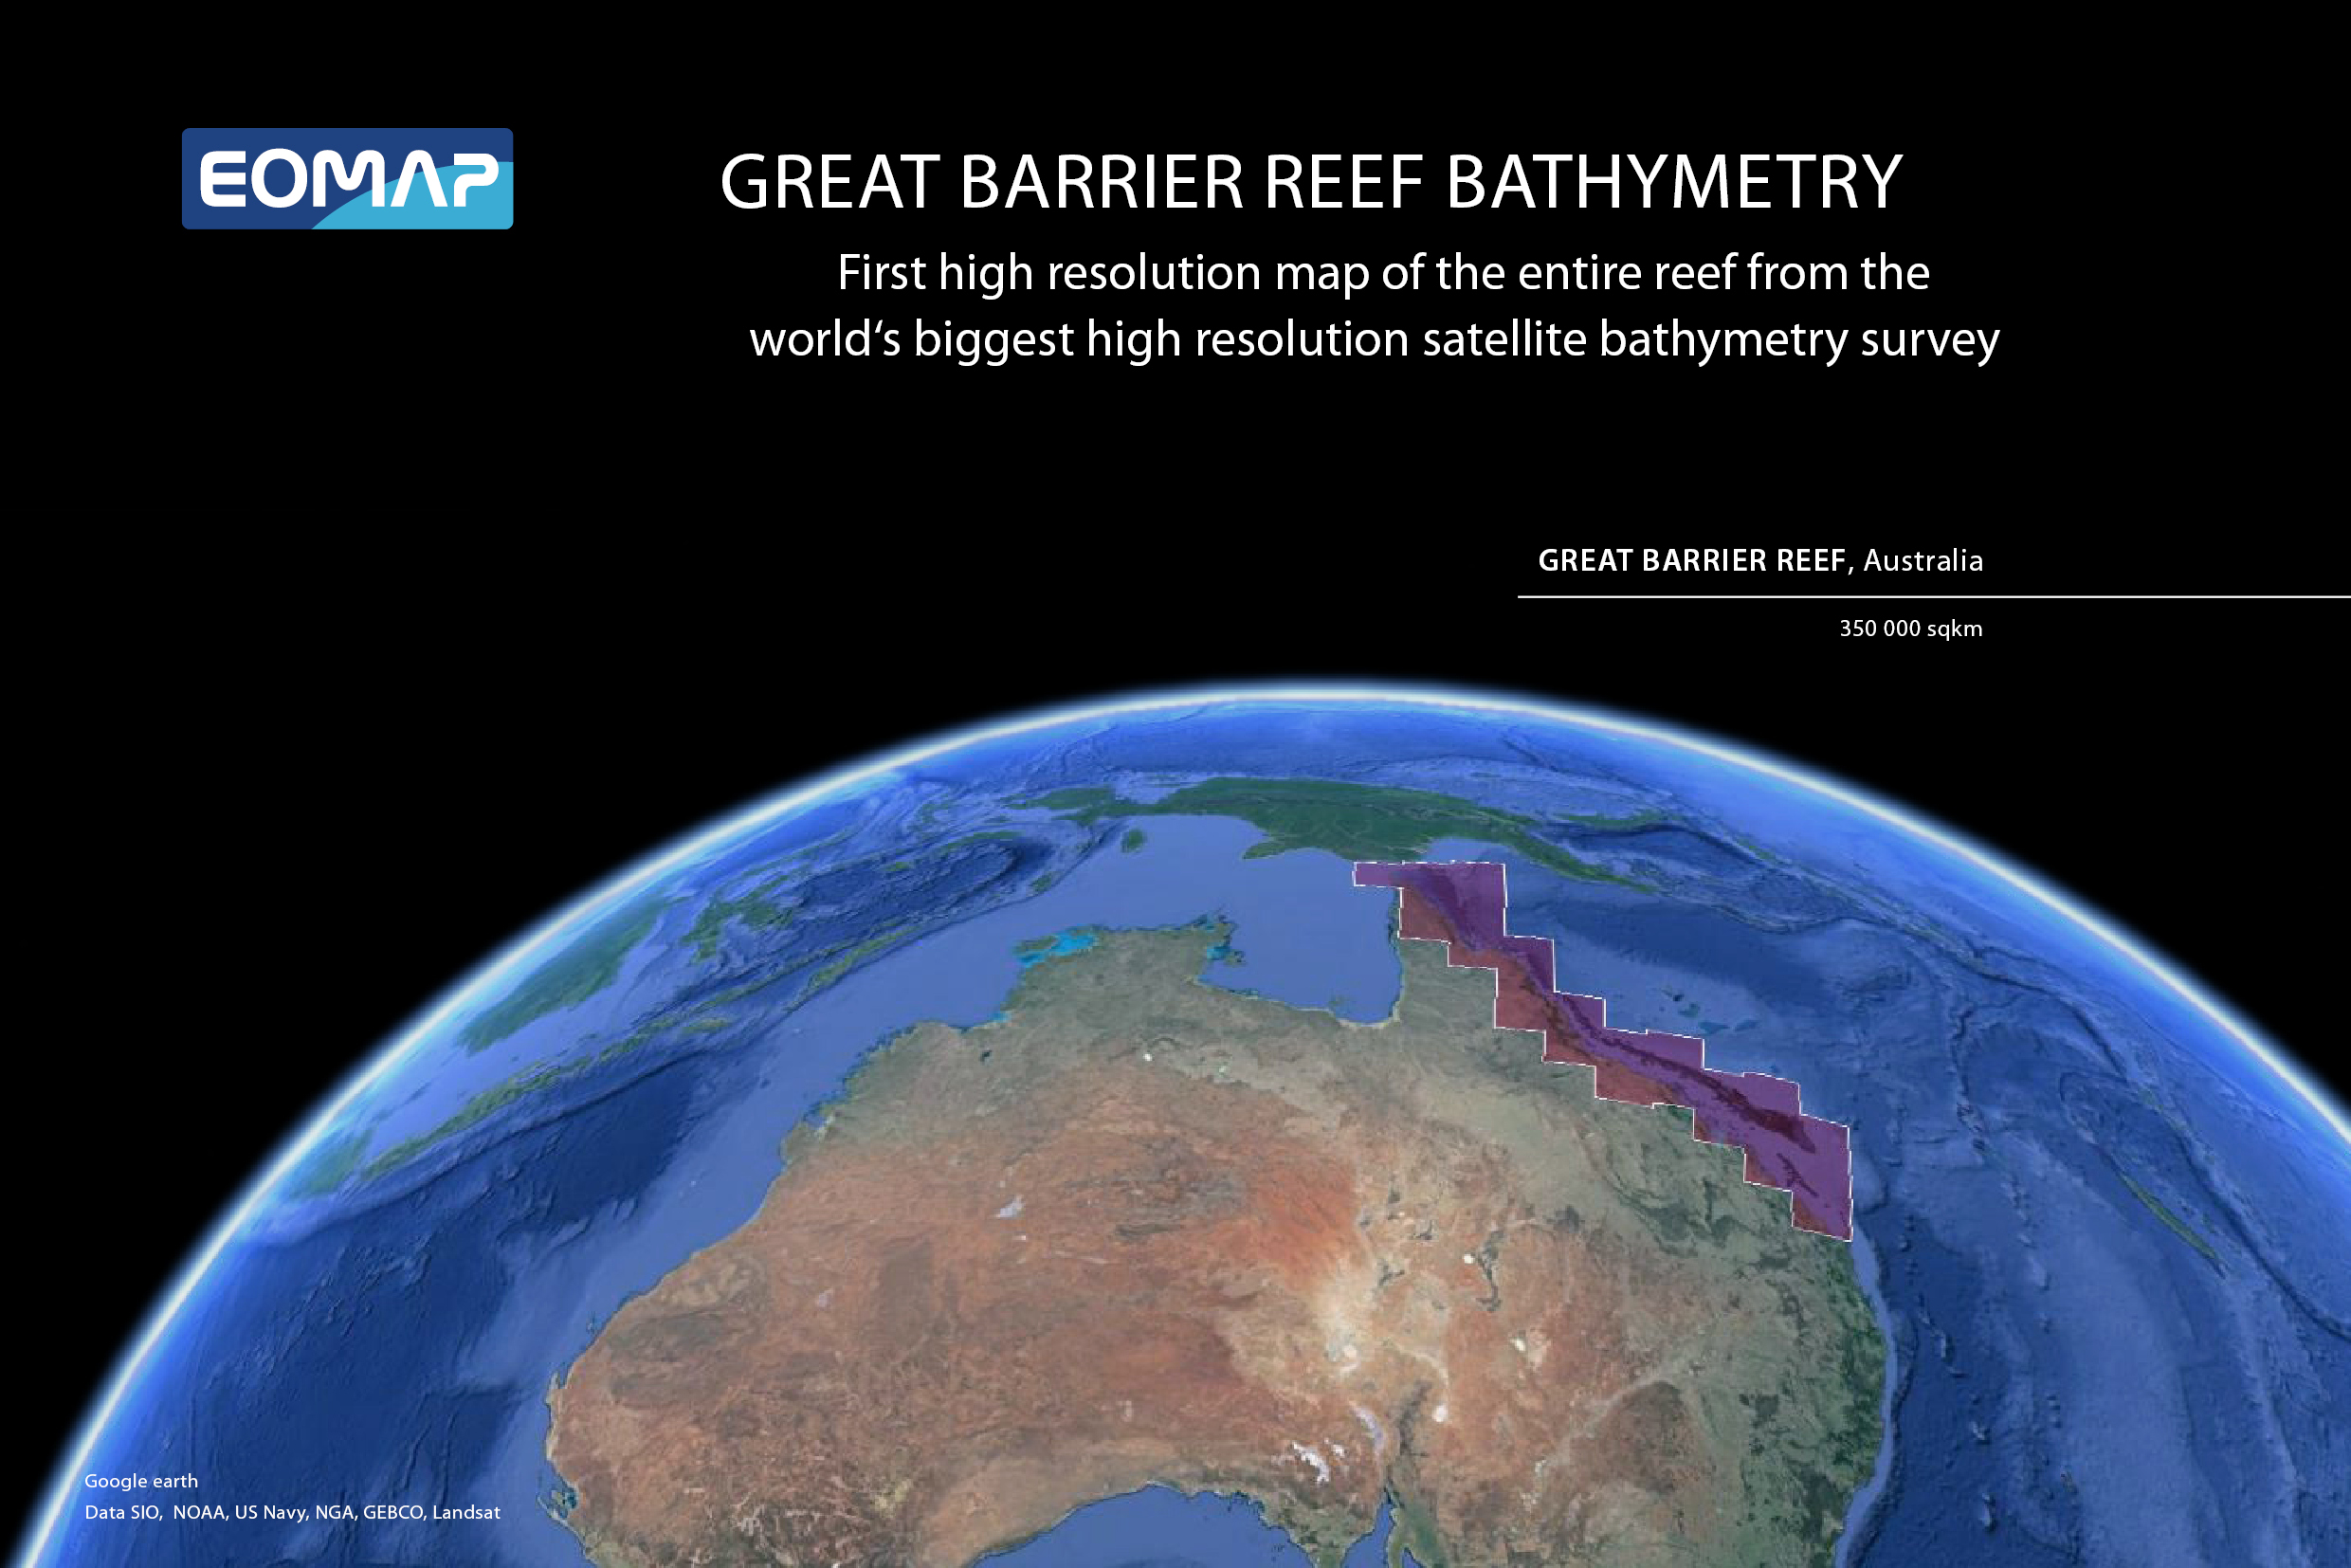 The Great Barrier Reef Bathymetry Earth Observation